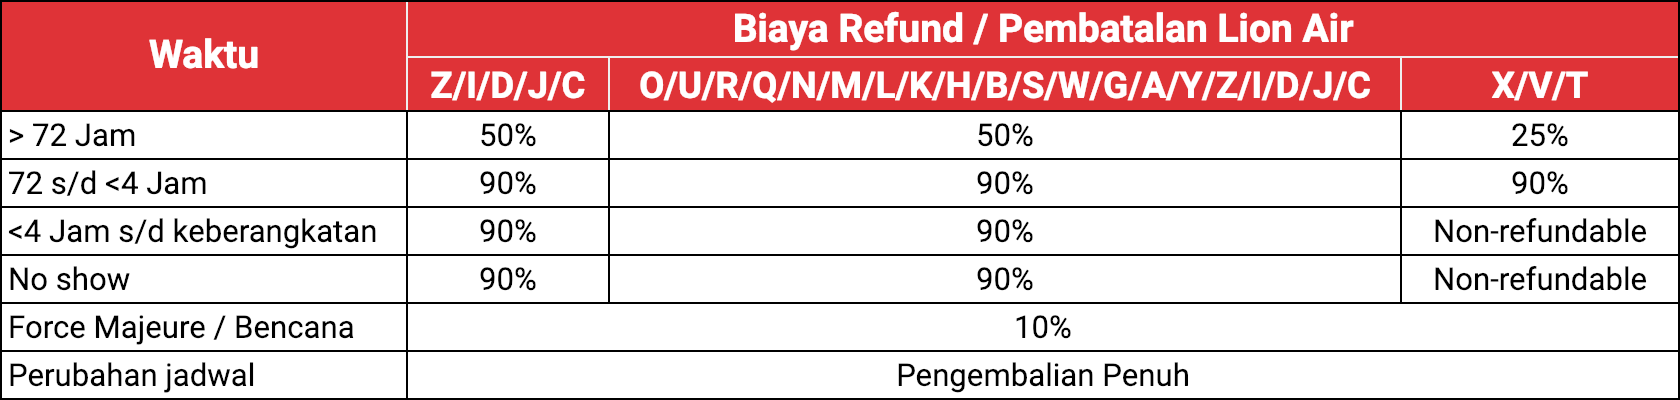 ketentuan refund lion air